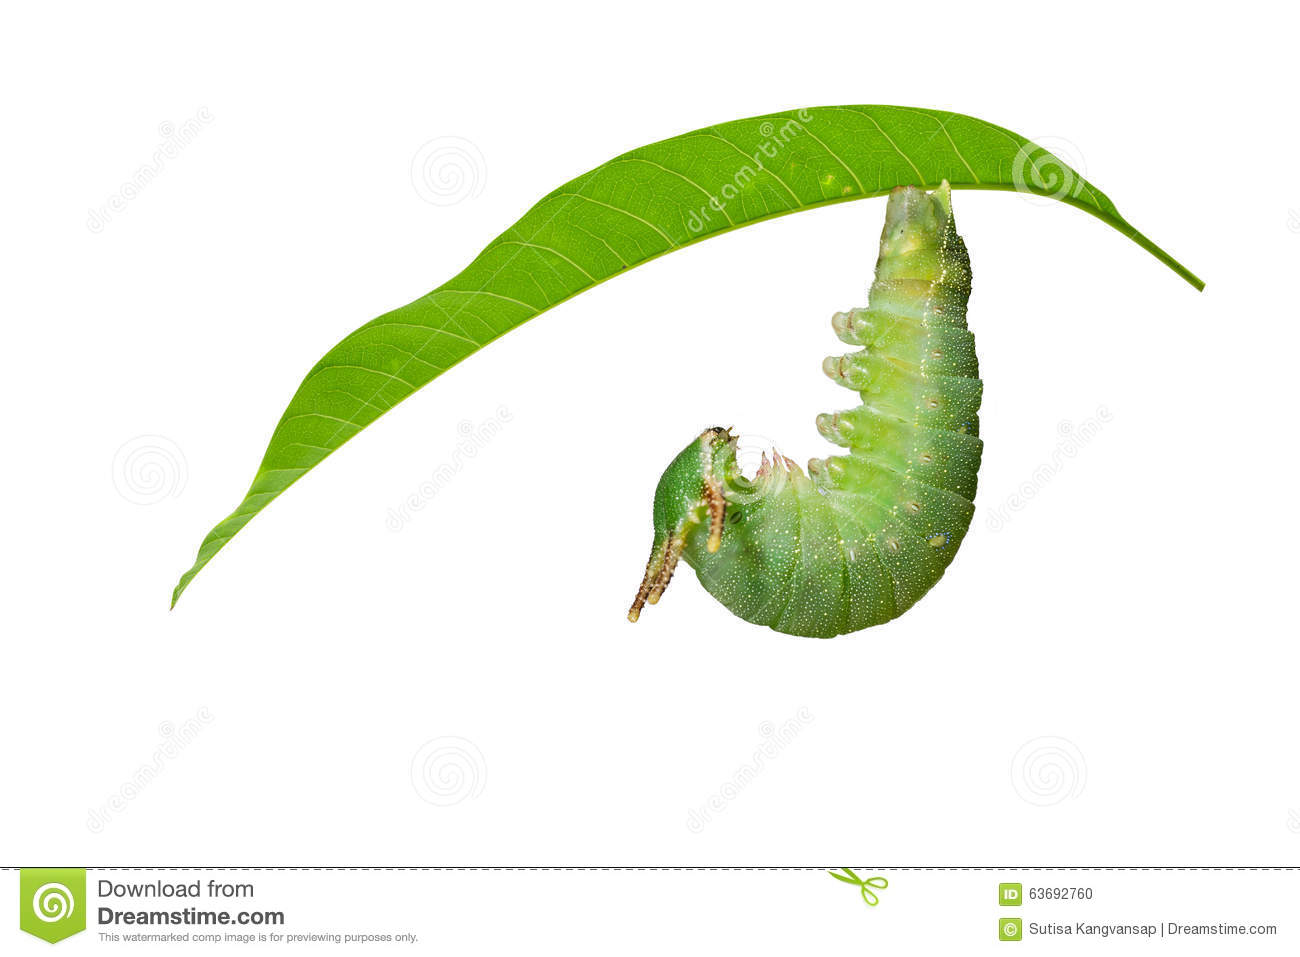 Caterpillar Of Tawny Rajah Butterfly Before Molting To Pupa Stock.